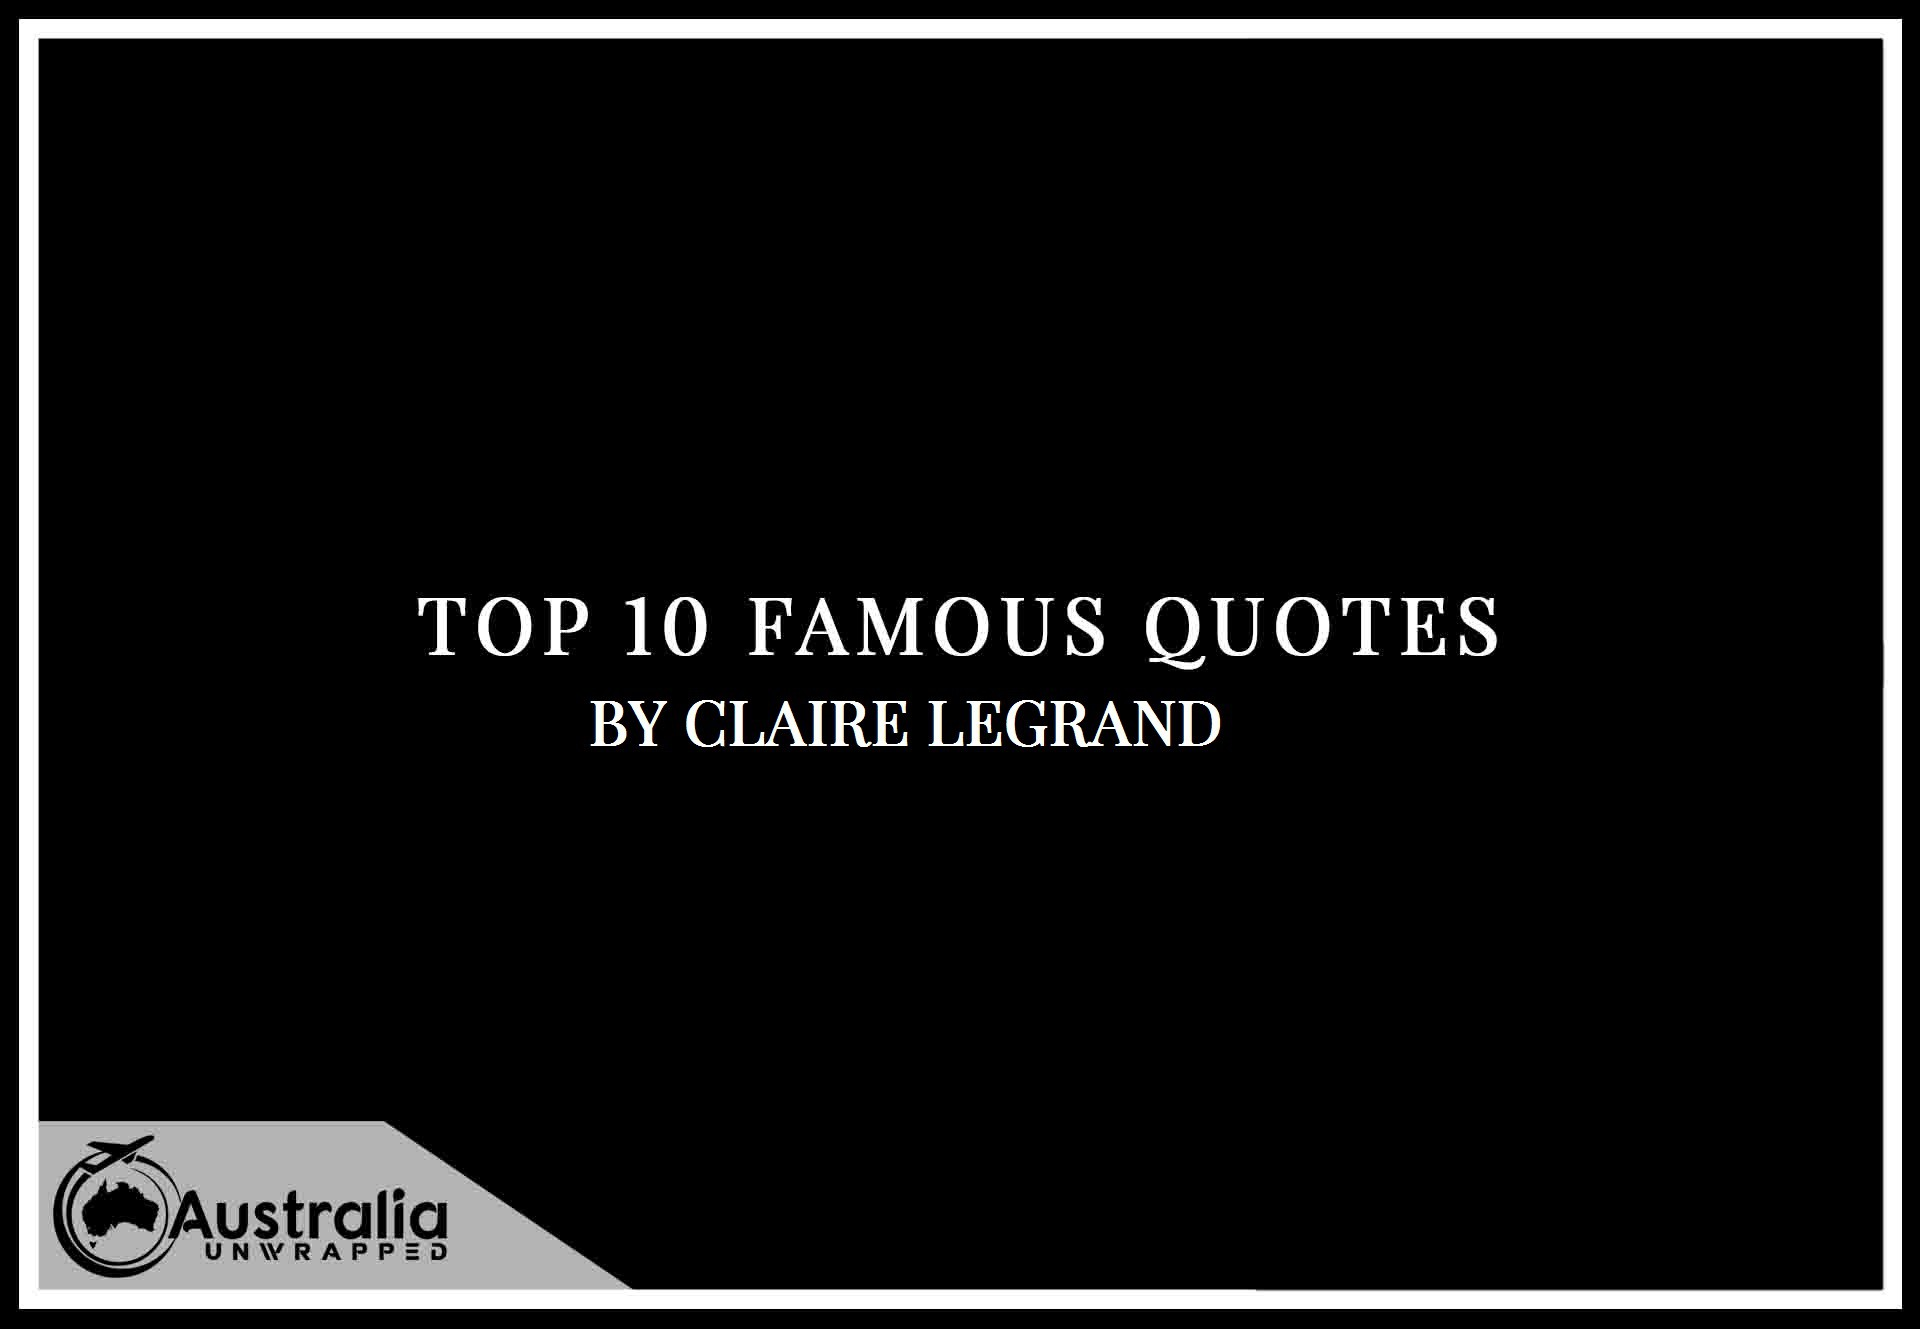 Claire Legrand's Top 10 Popular and Famous Quotes